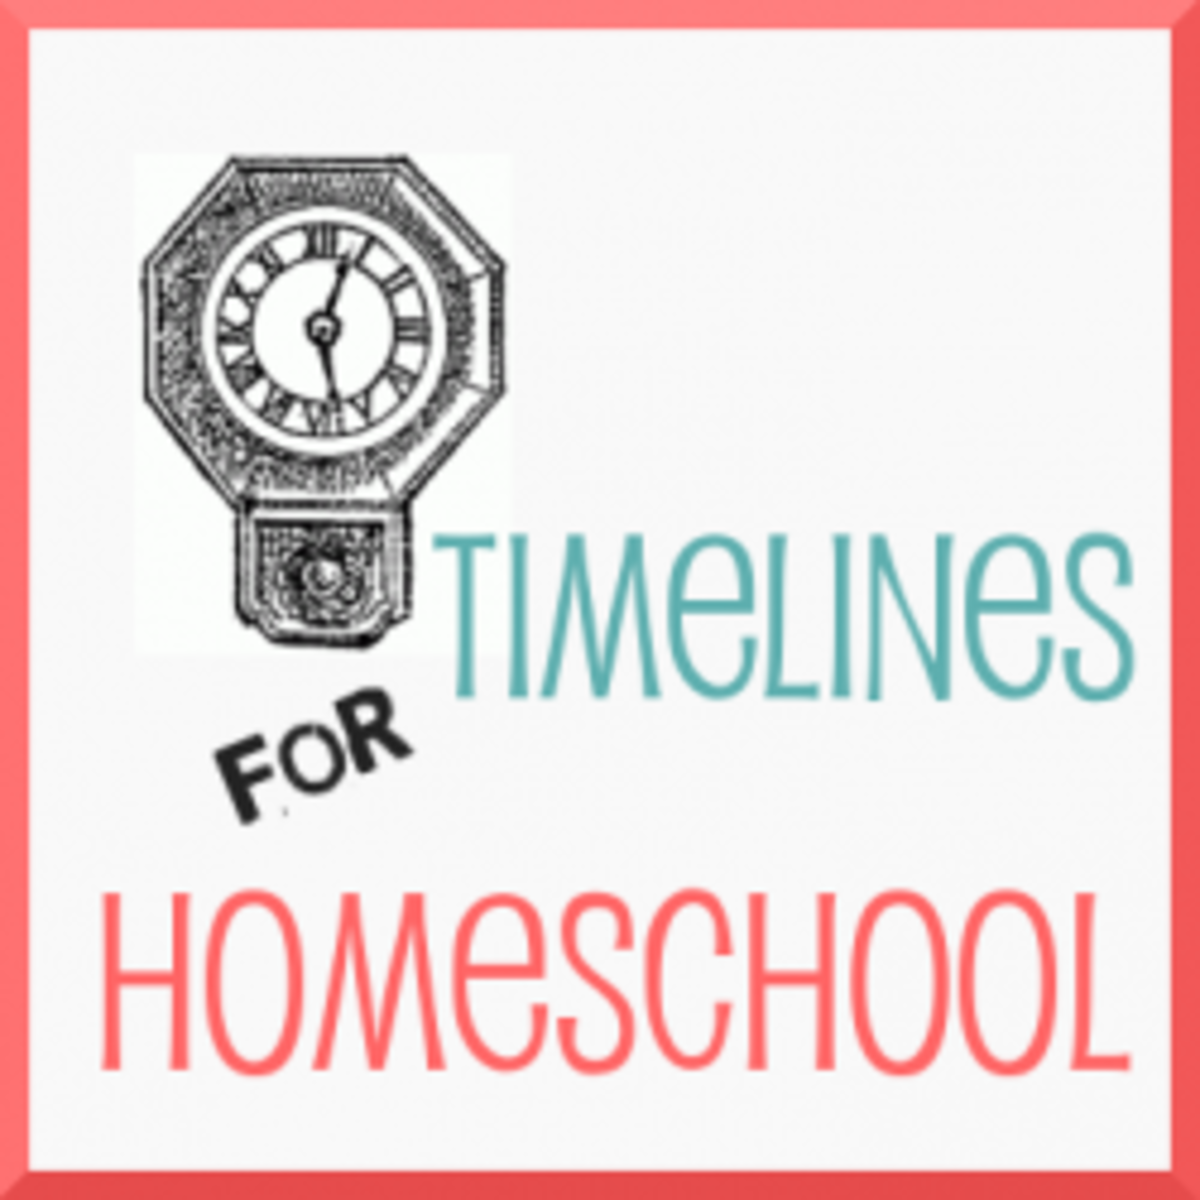 Timelines for Homeschool